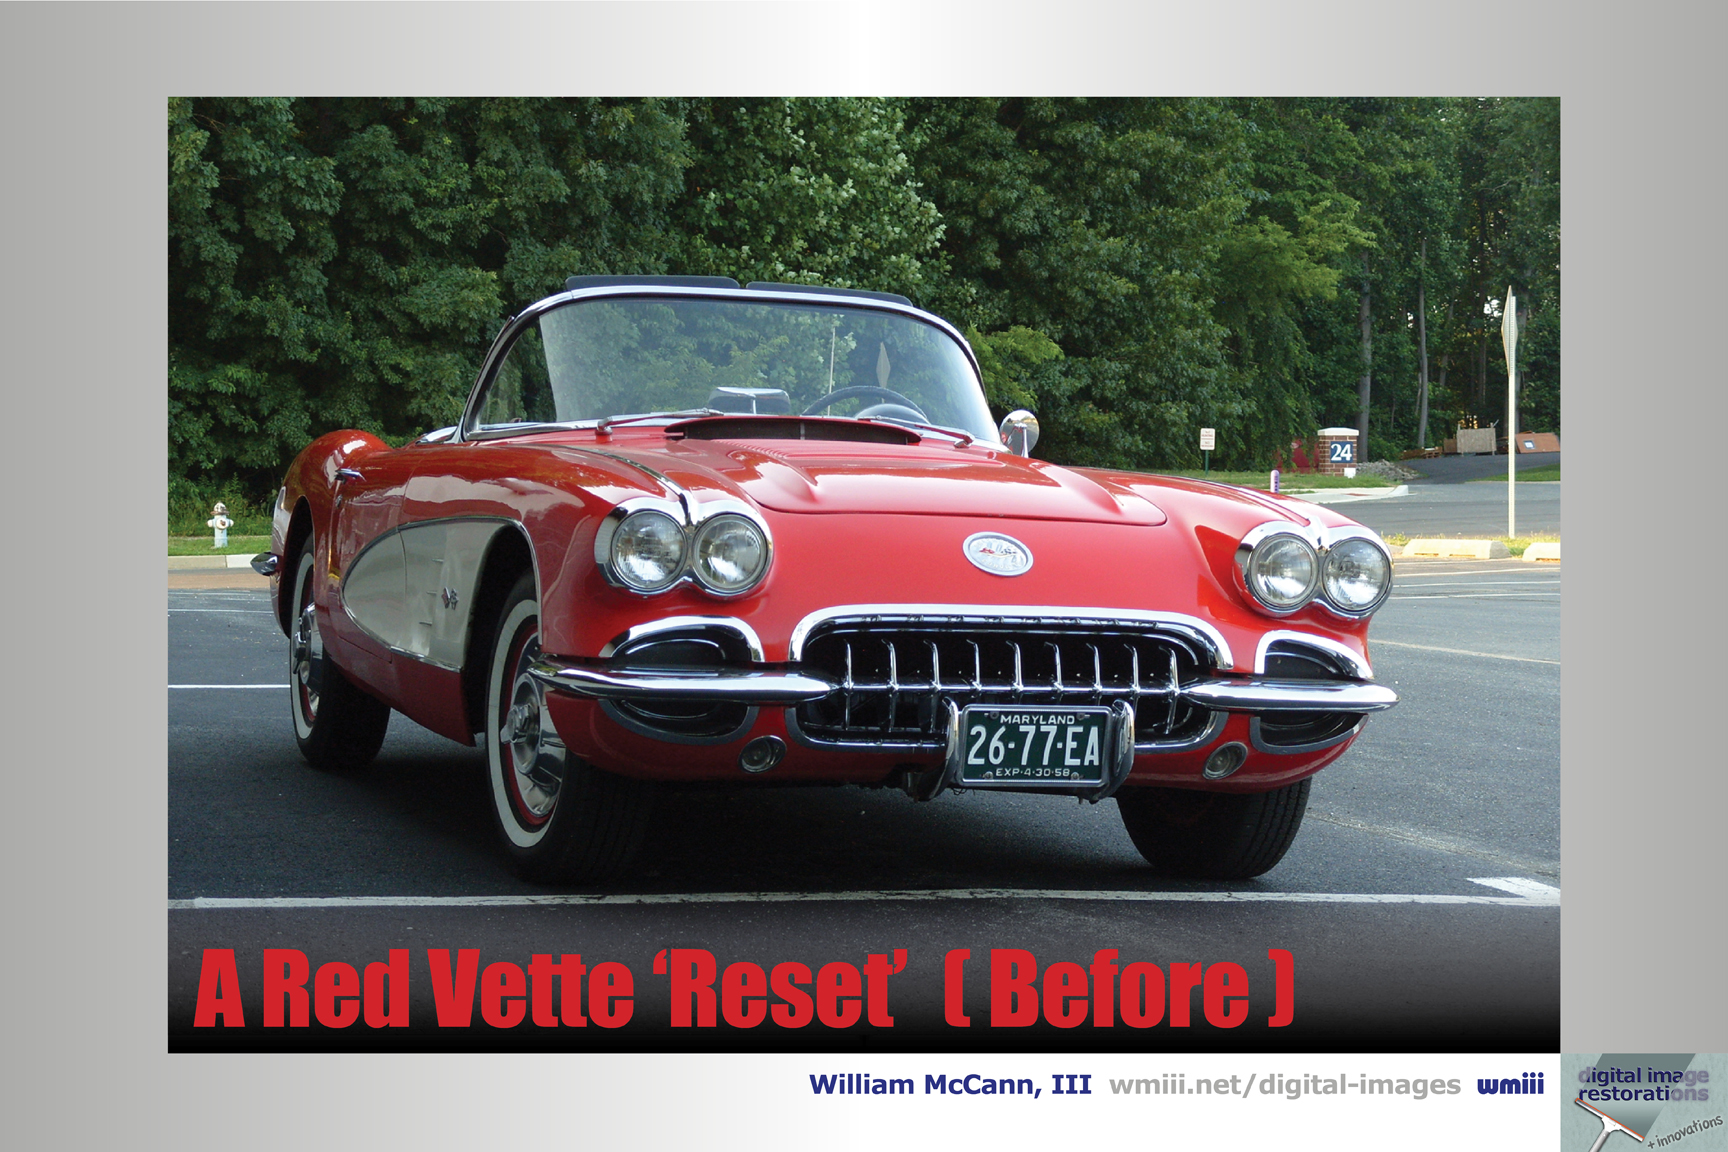 A Red Vette 'Reset' (Before)